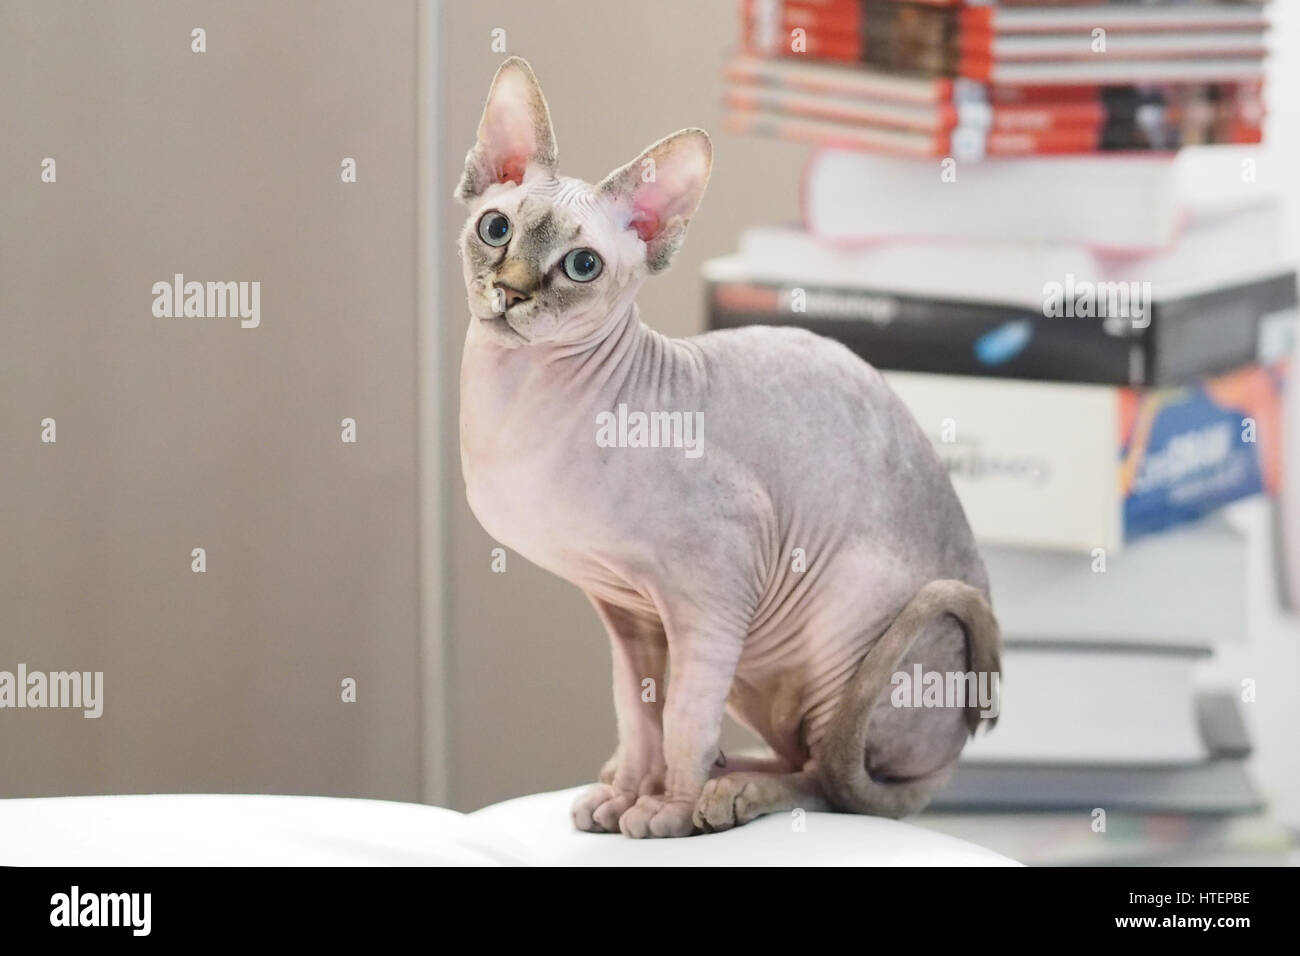 Sphinx cat at home alone - Stock Image